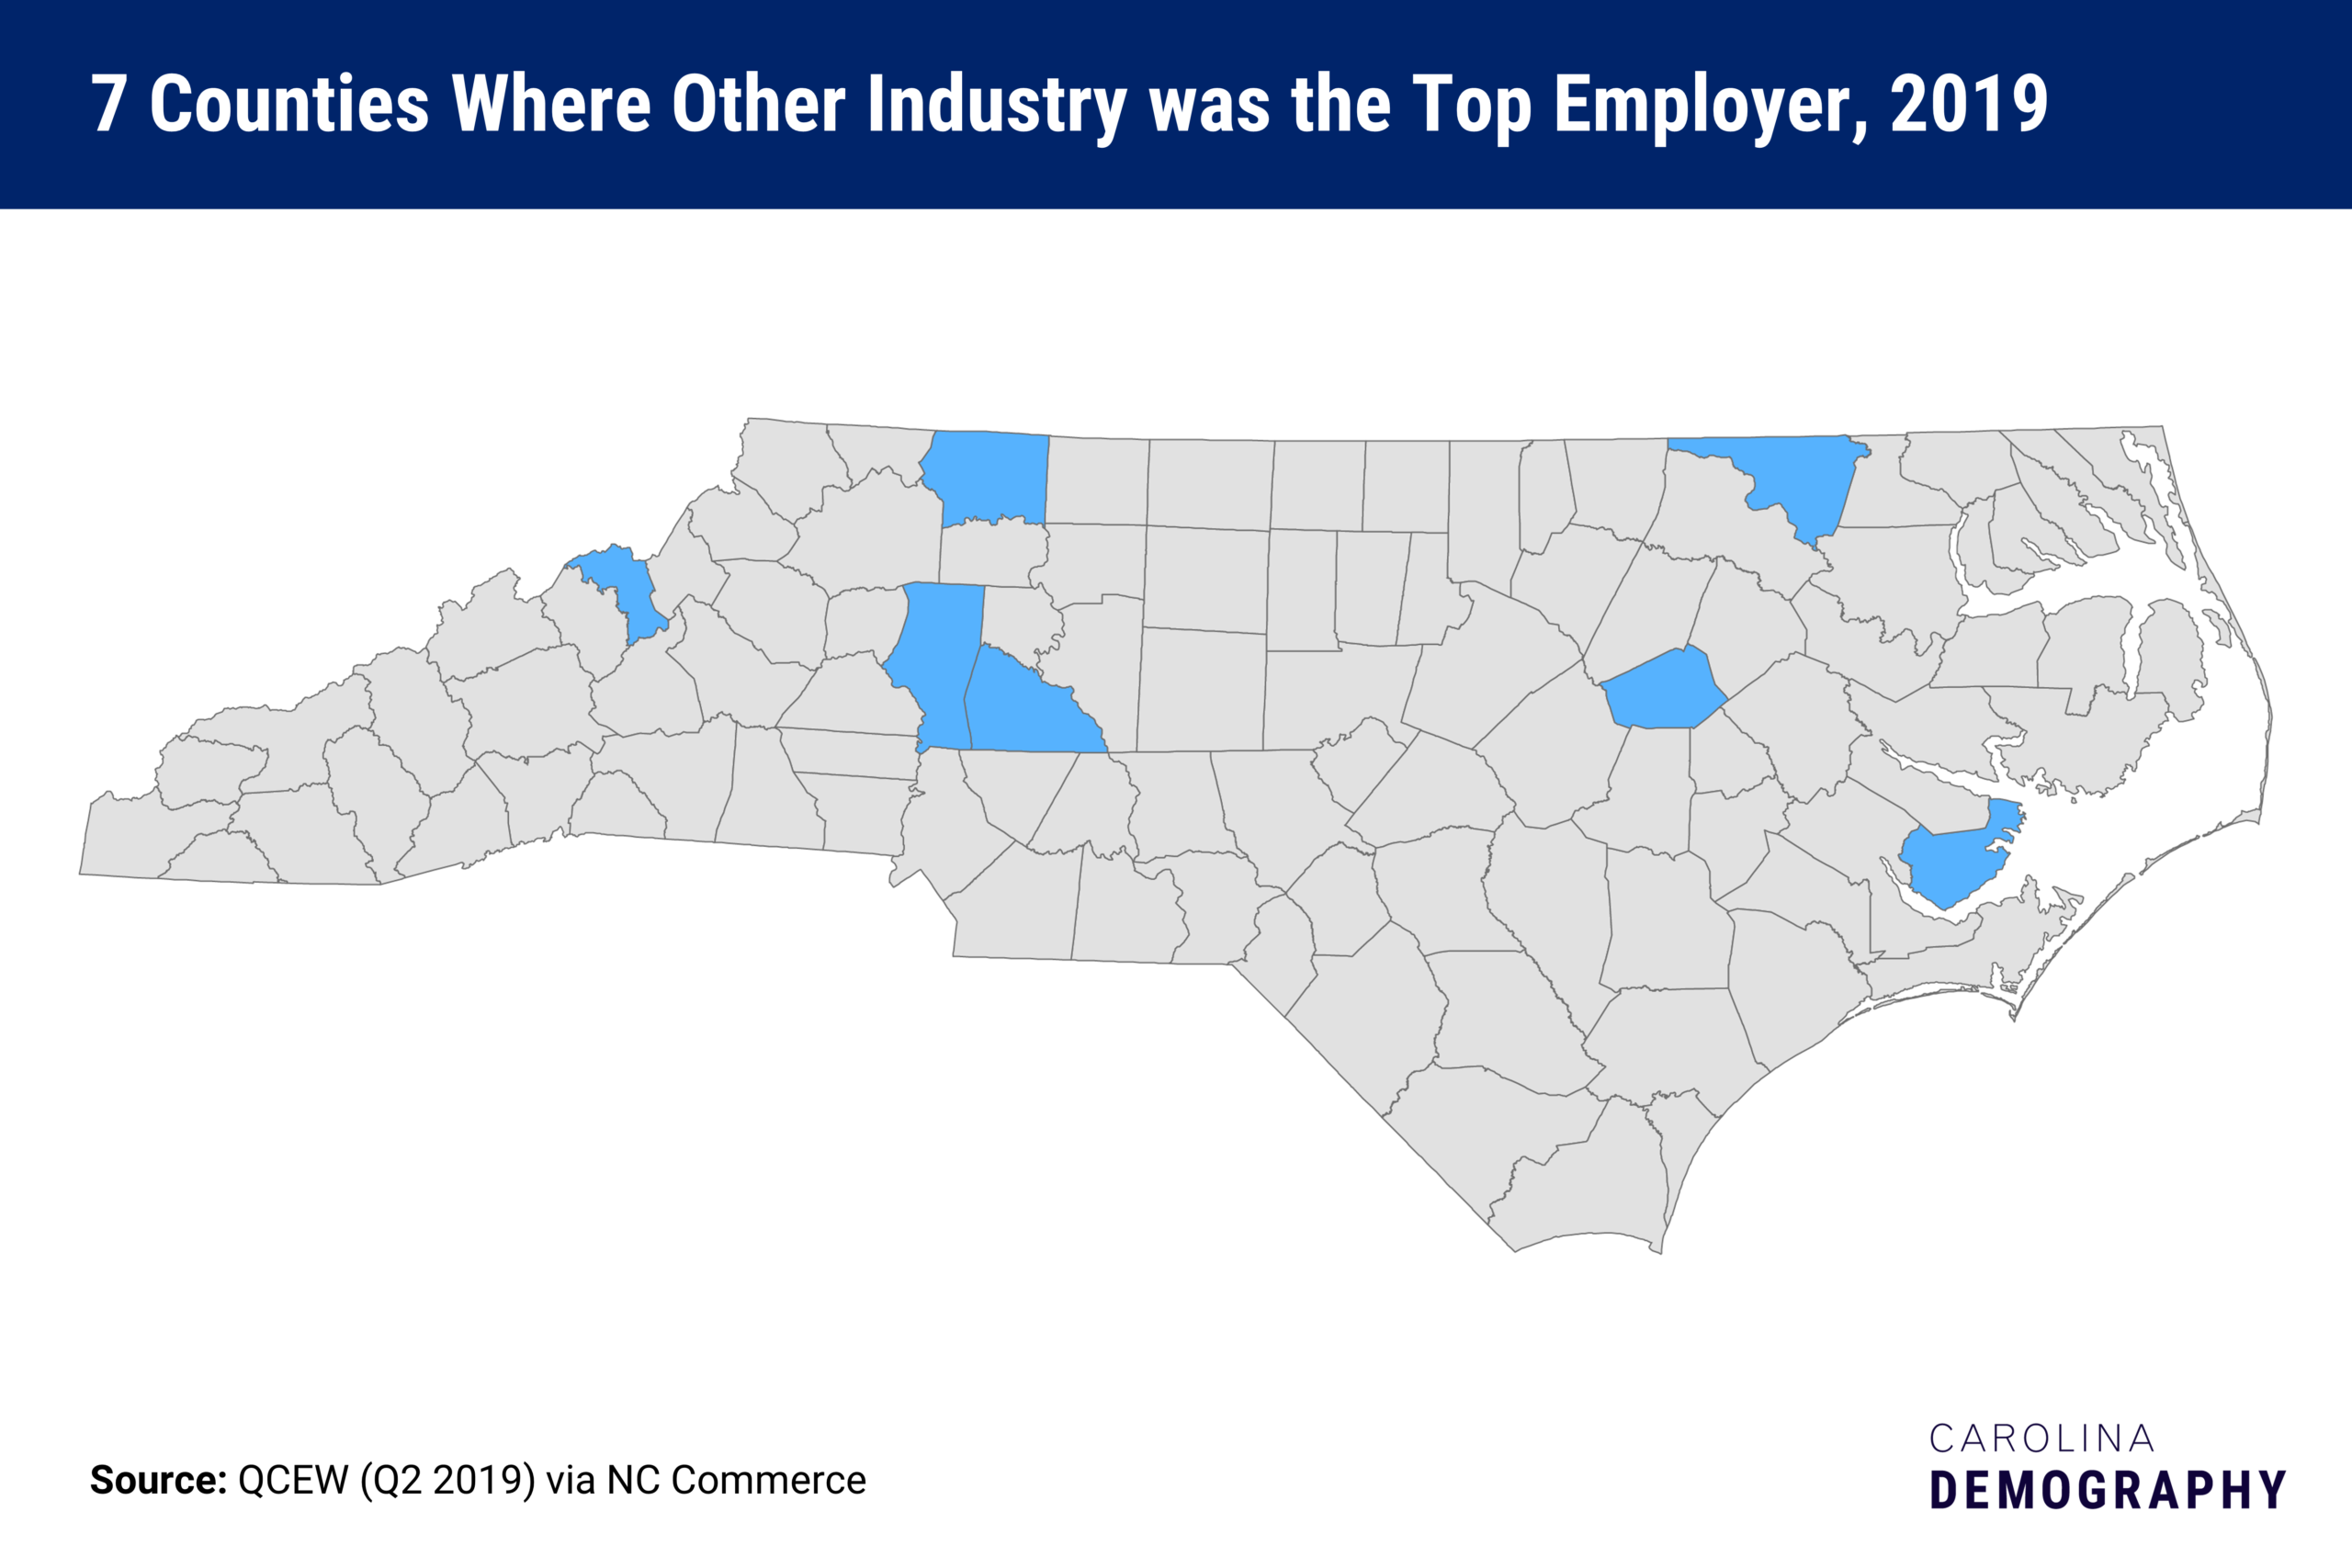 7 counties where Other industry was the top employer